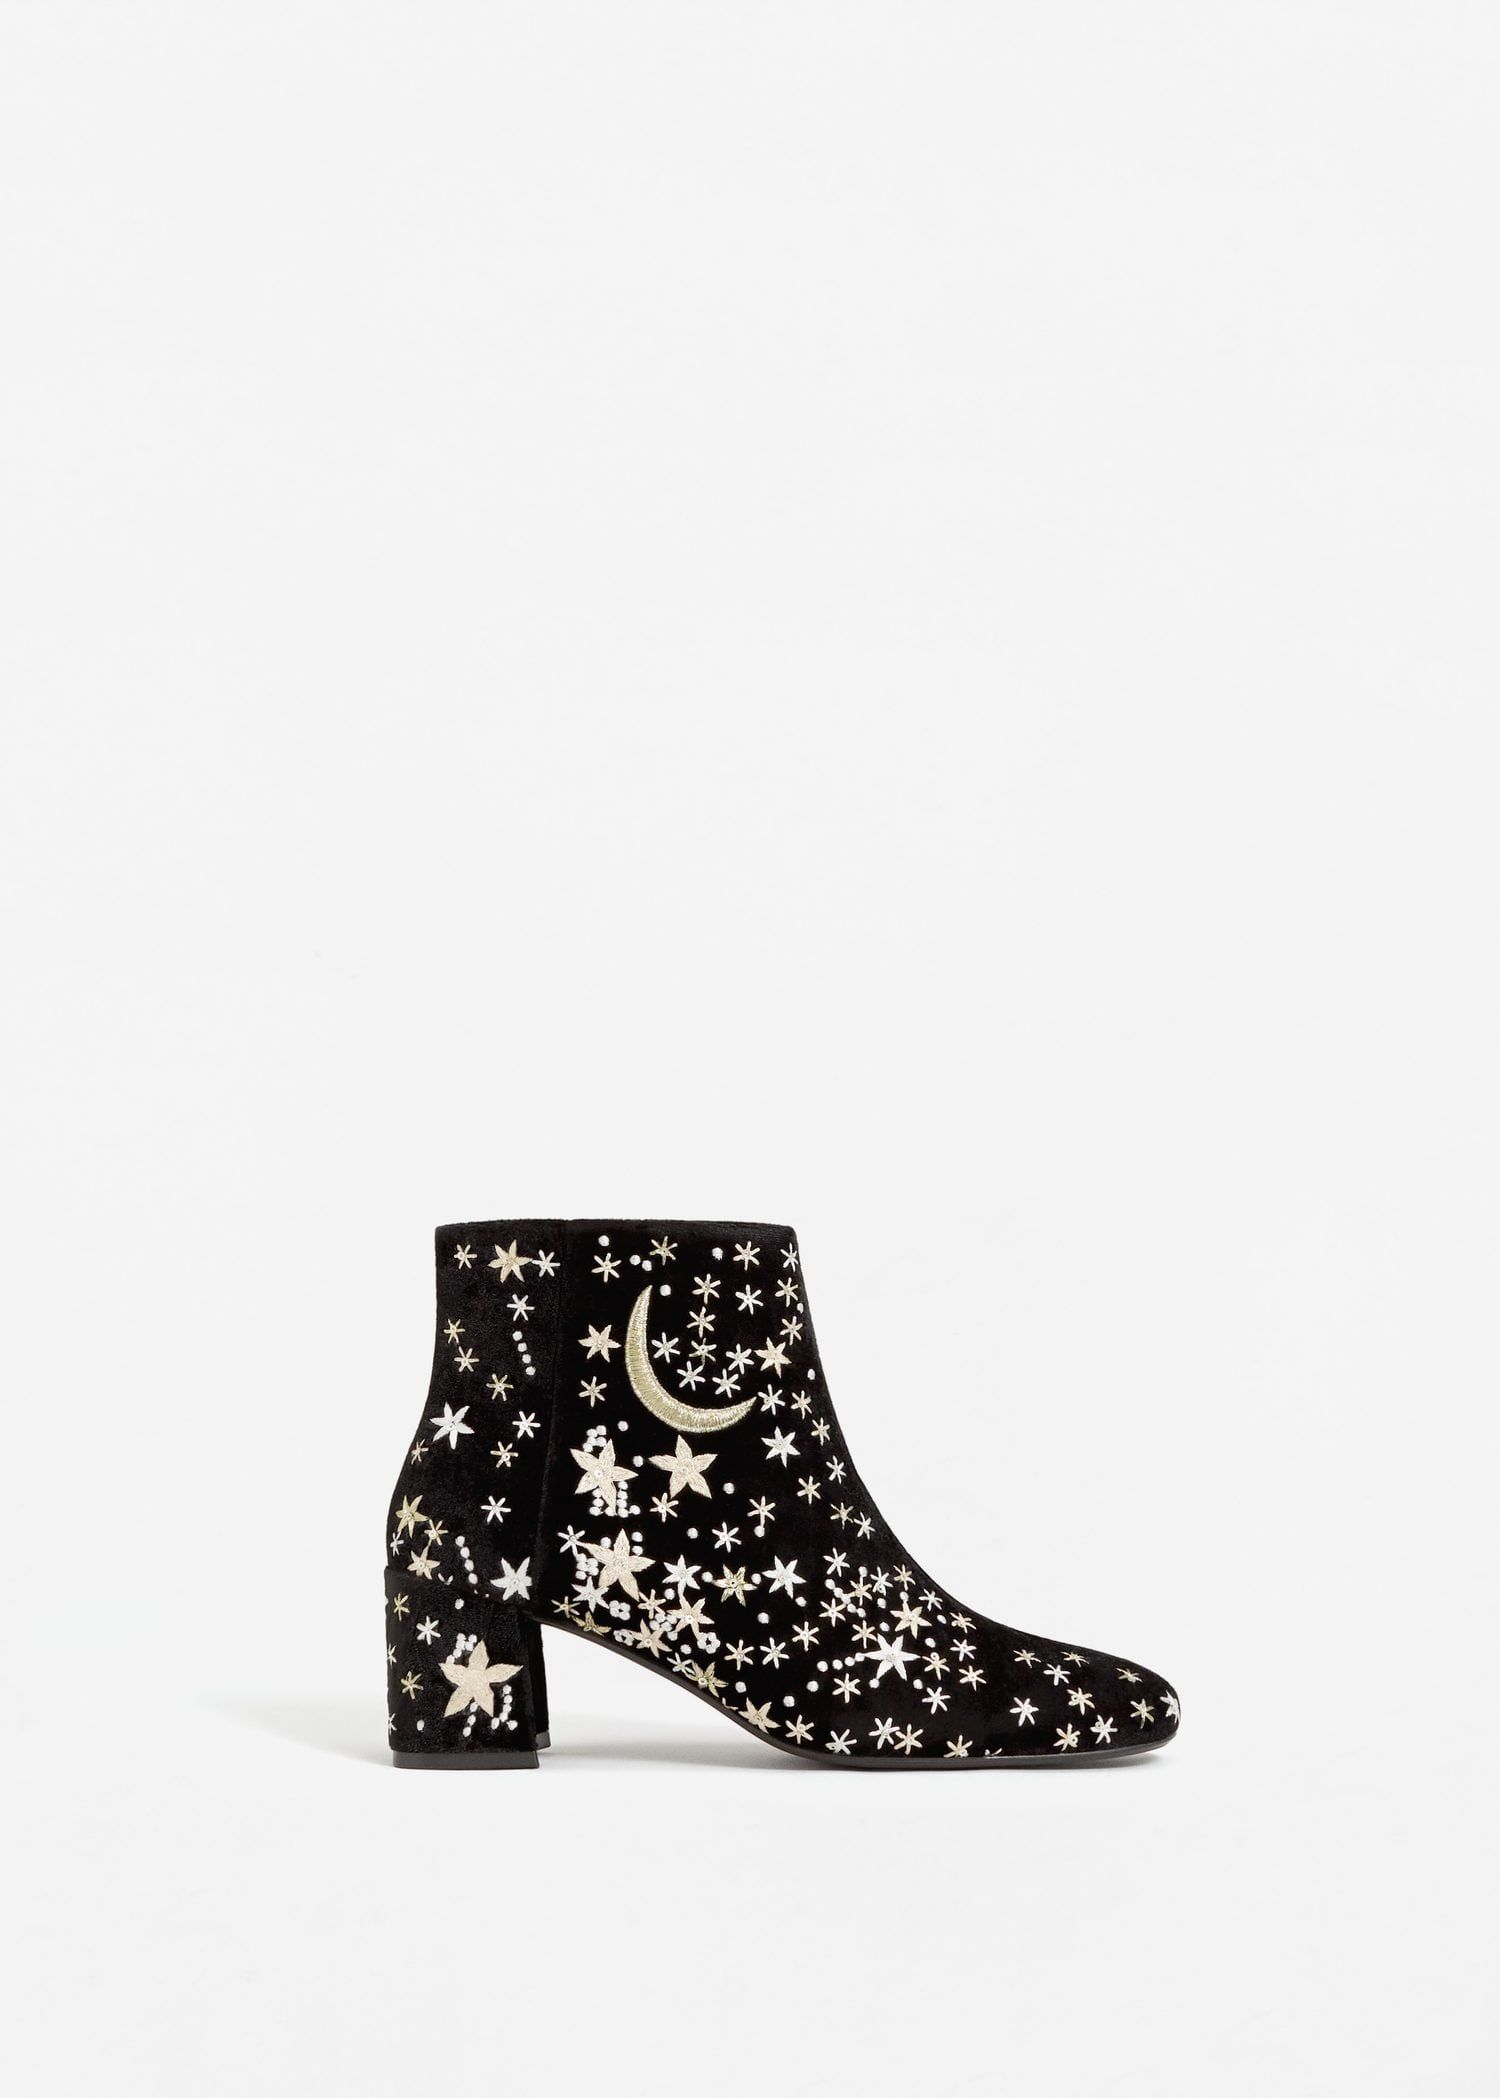 bc7ff101a Stars embroidered ankle boots - Women in 2019   Fall outfit ...